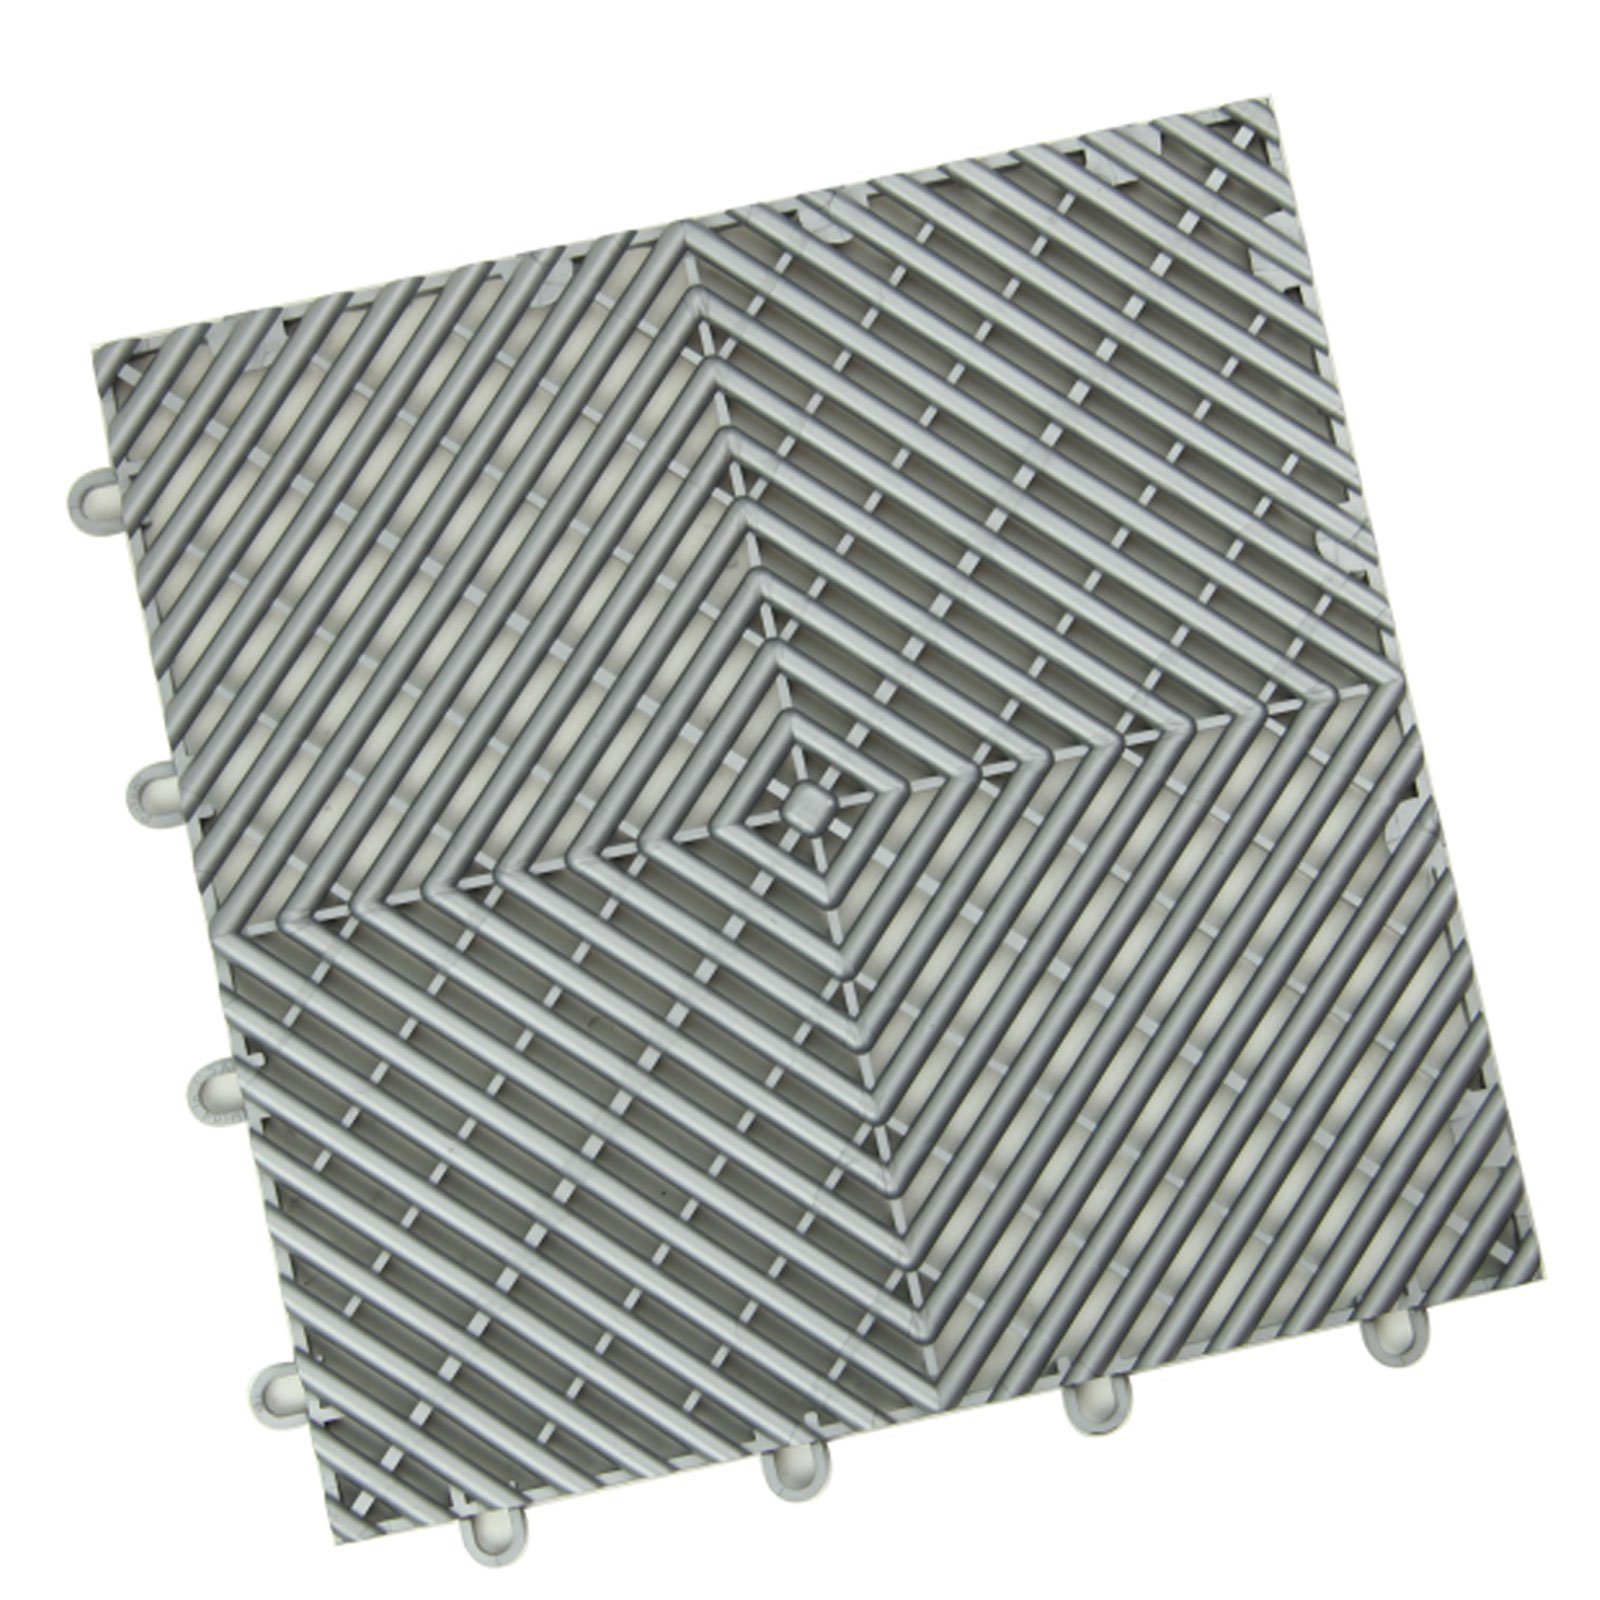 24 Pack, Shelby Blue IncStores Diamond Grid-Loc Garage Flooring Snap Together Mat Drainage Tiles